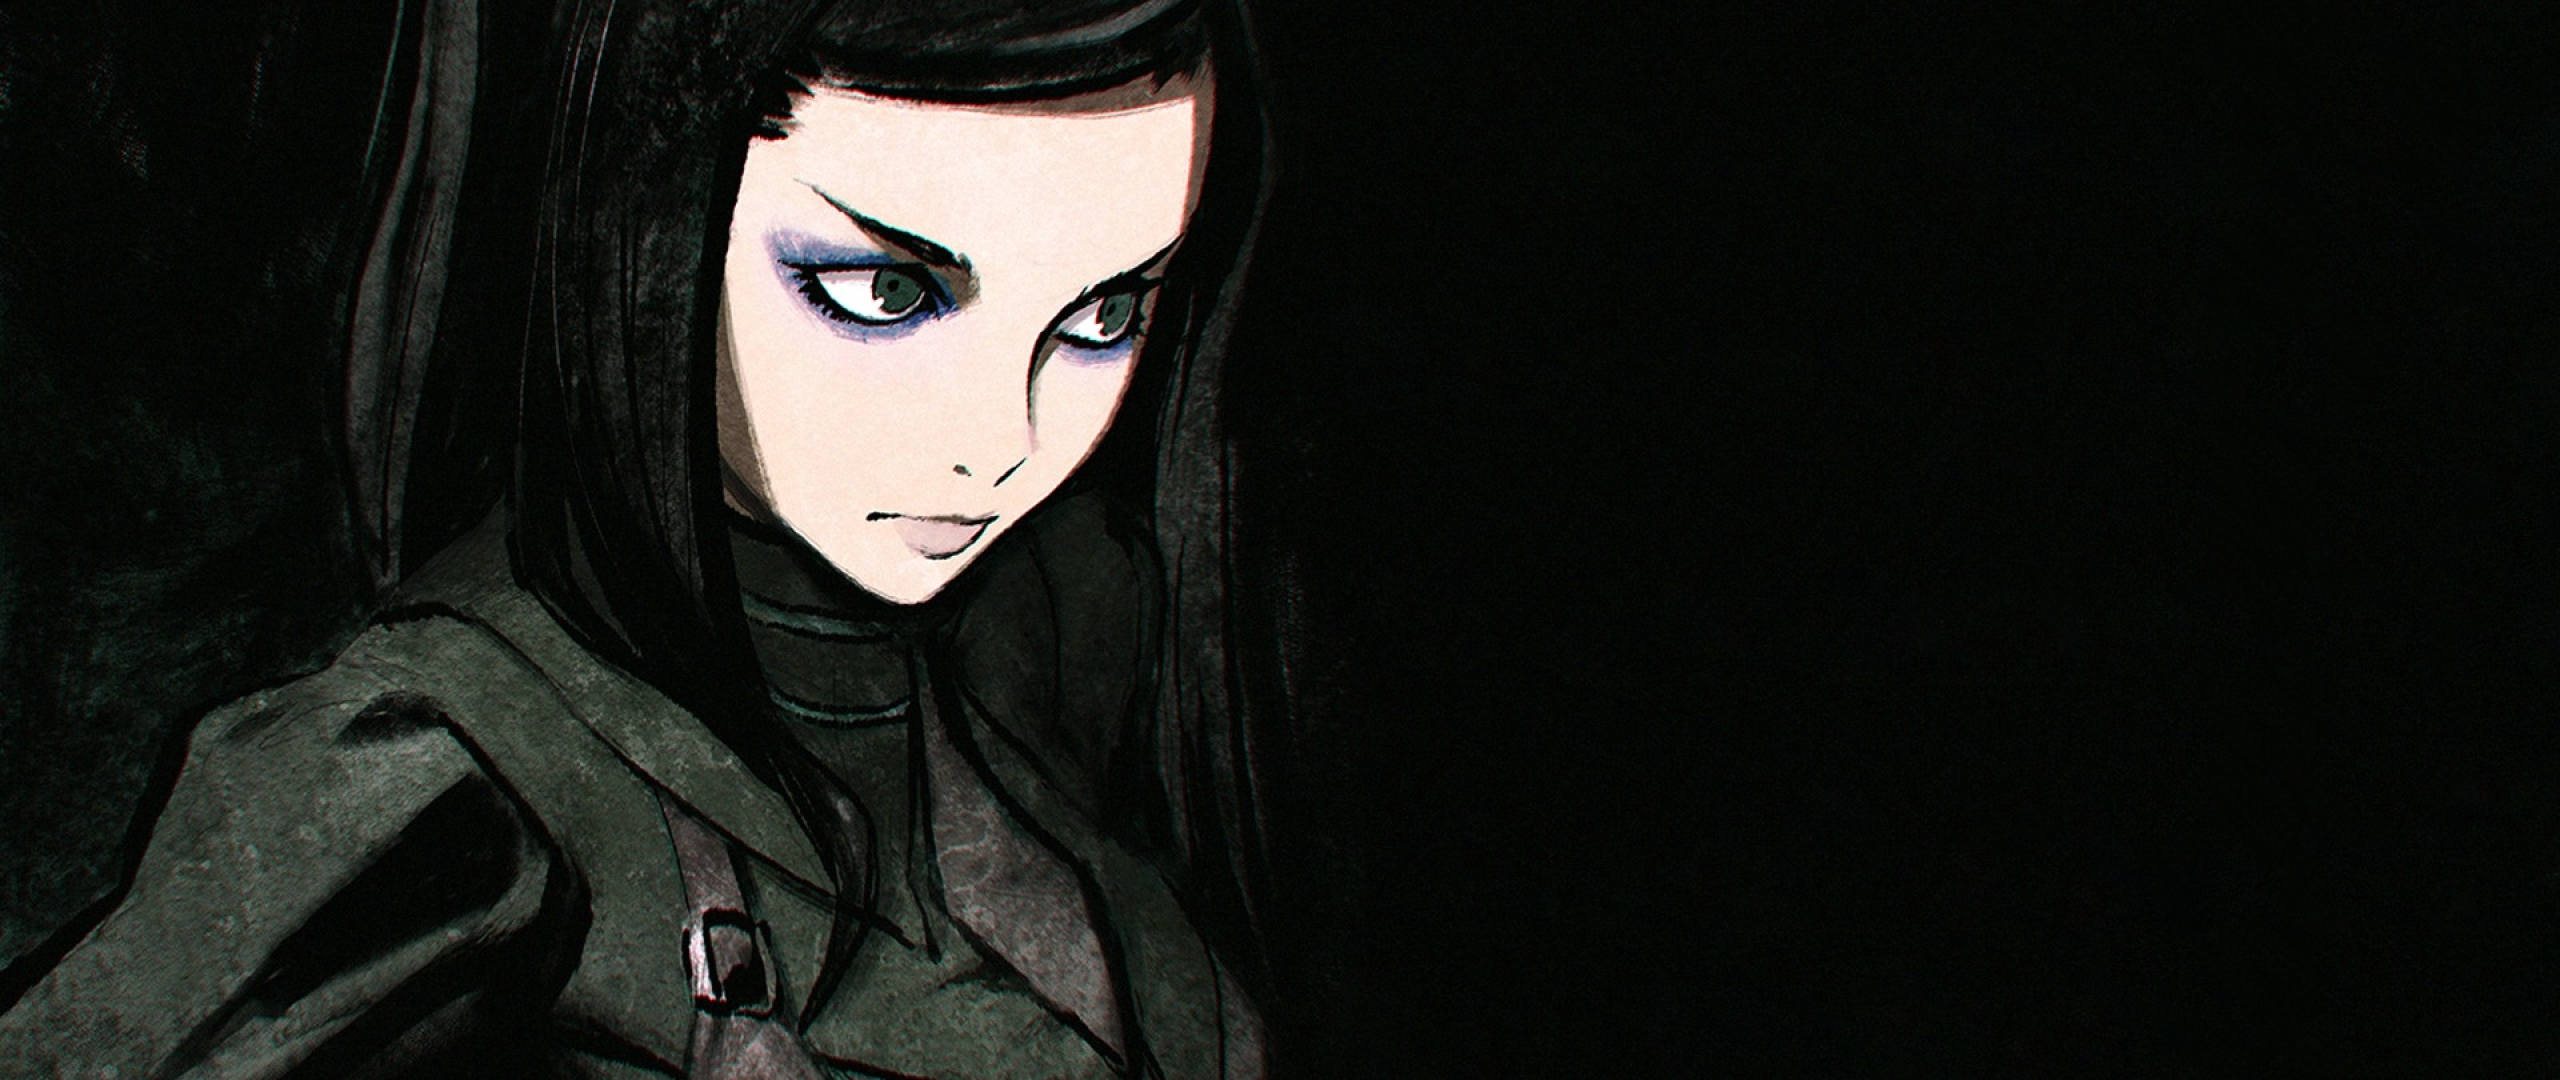 Gif ergo proxy animes christine and the queens animated gif on.